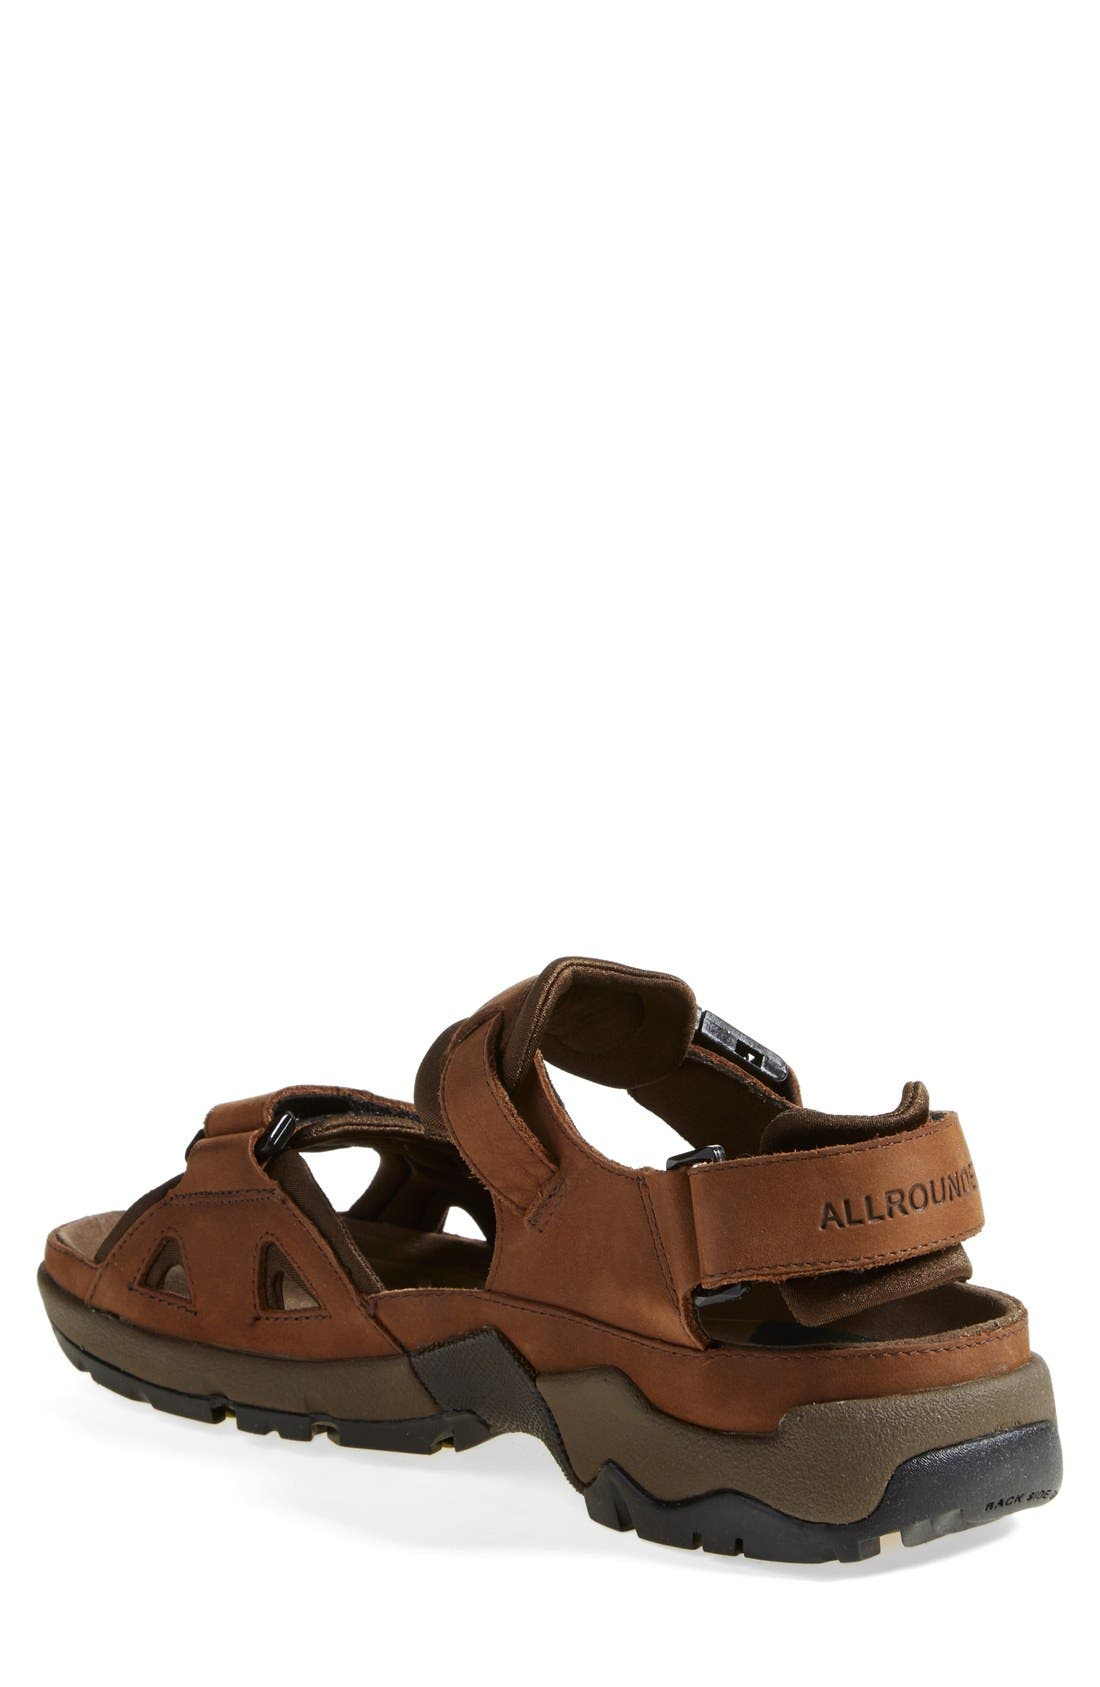 Allrounder by Mephisto 'Alligator' Sandal,                             Alternate thumbnail 2, color,                             Brown